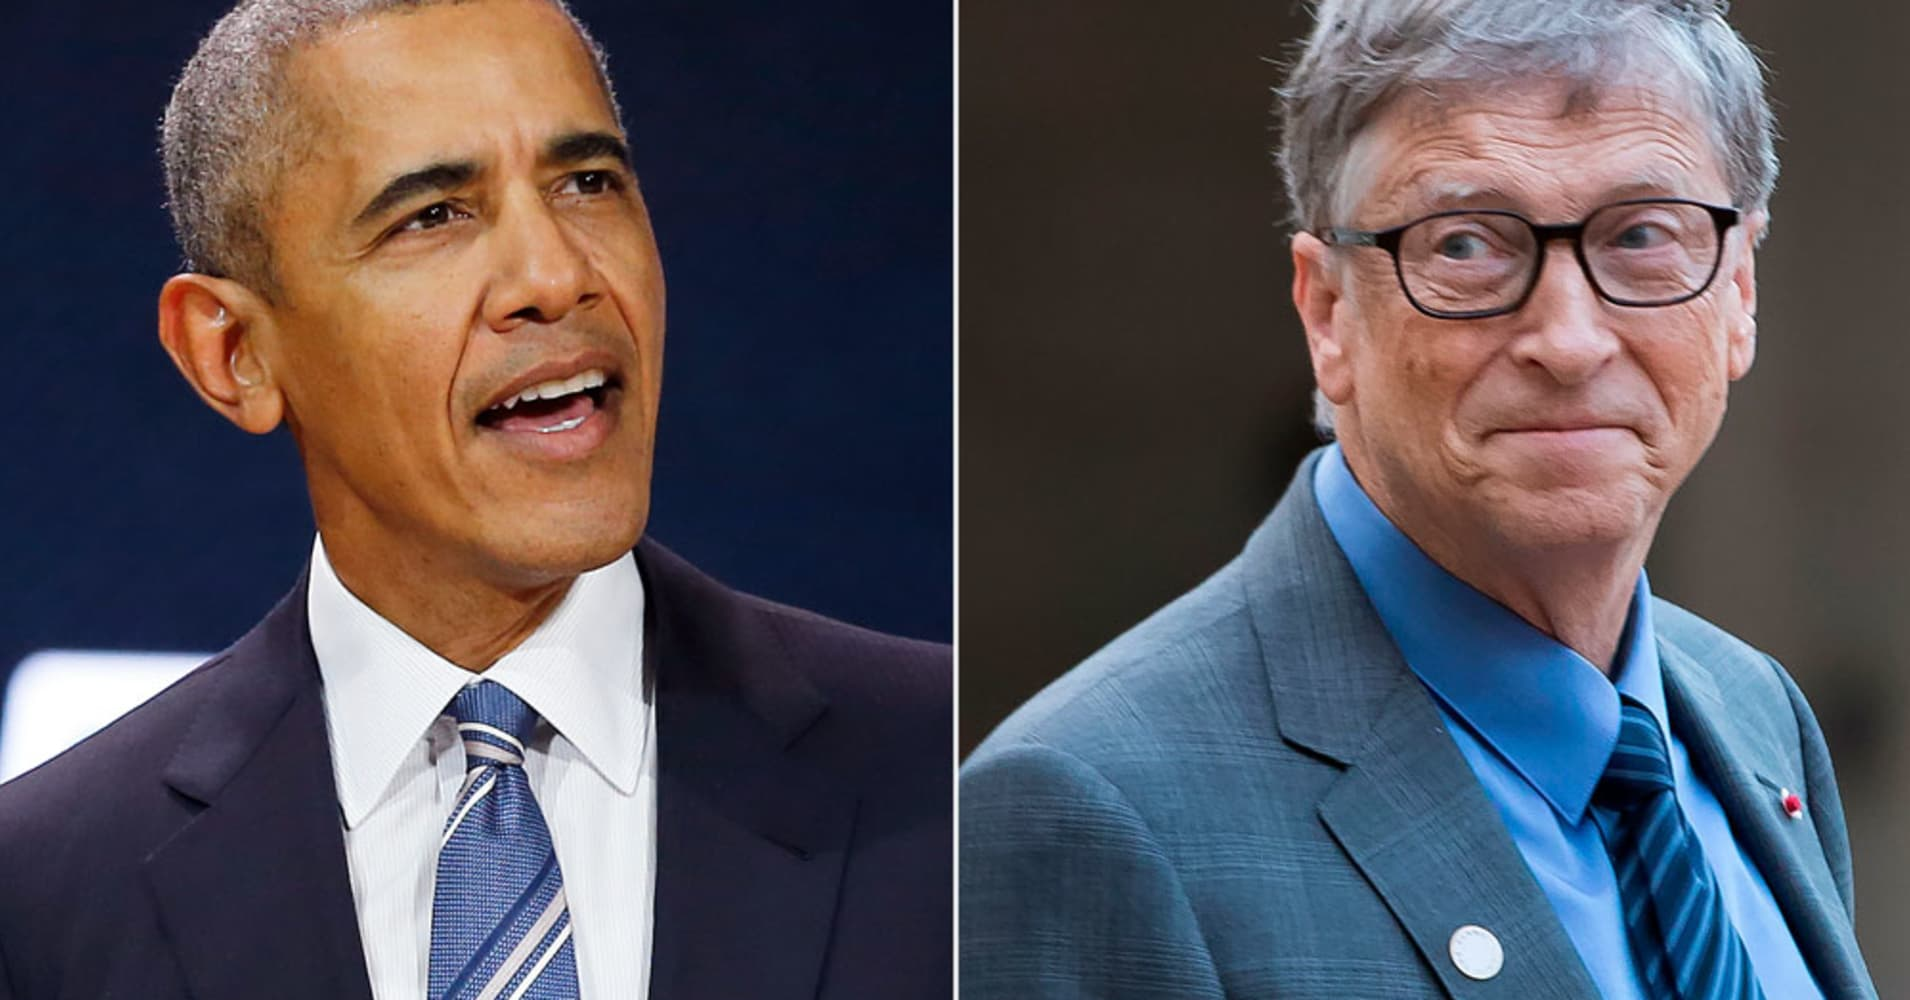 Top Business Books Recommended By Gates Obama And Others In 2018